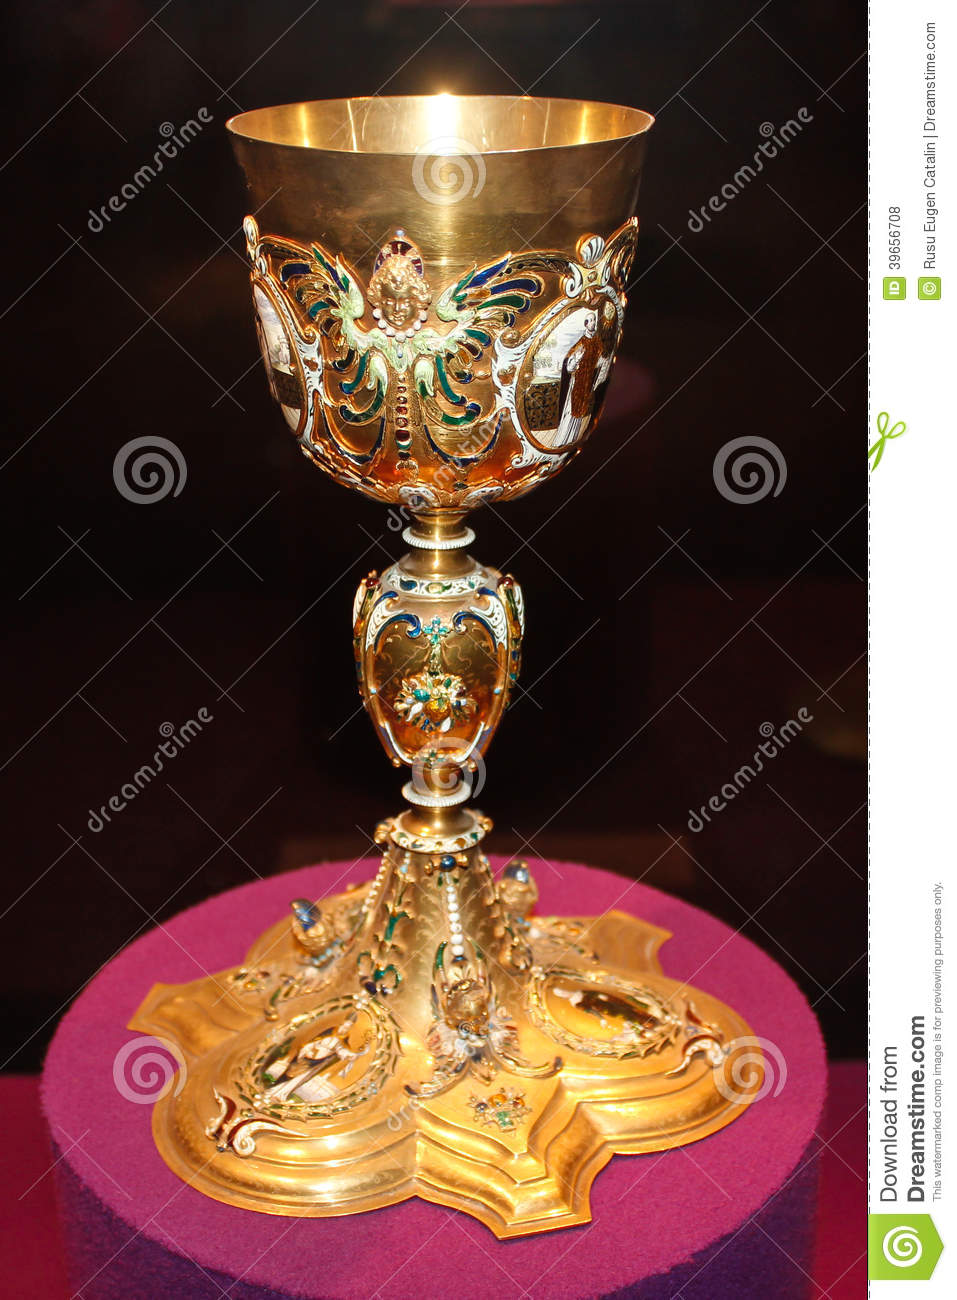 Golden Goblet Stock Illustration - Image: 39656708